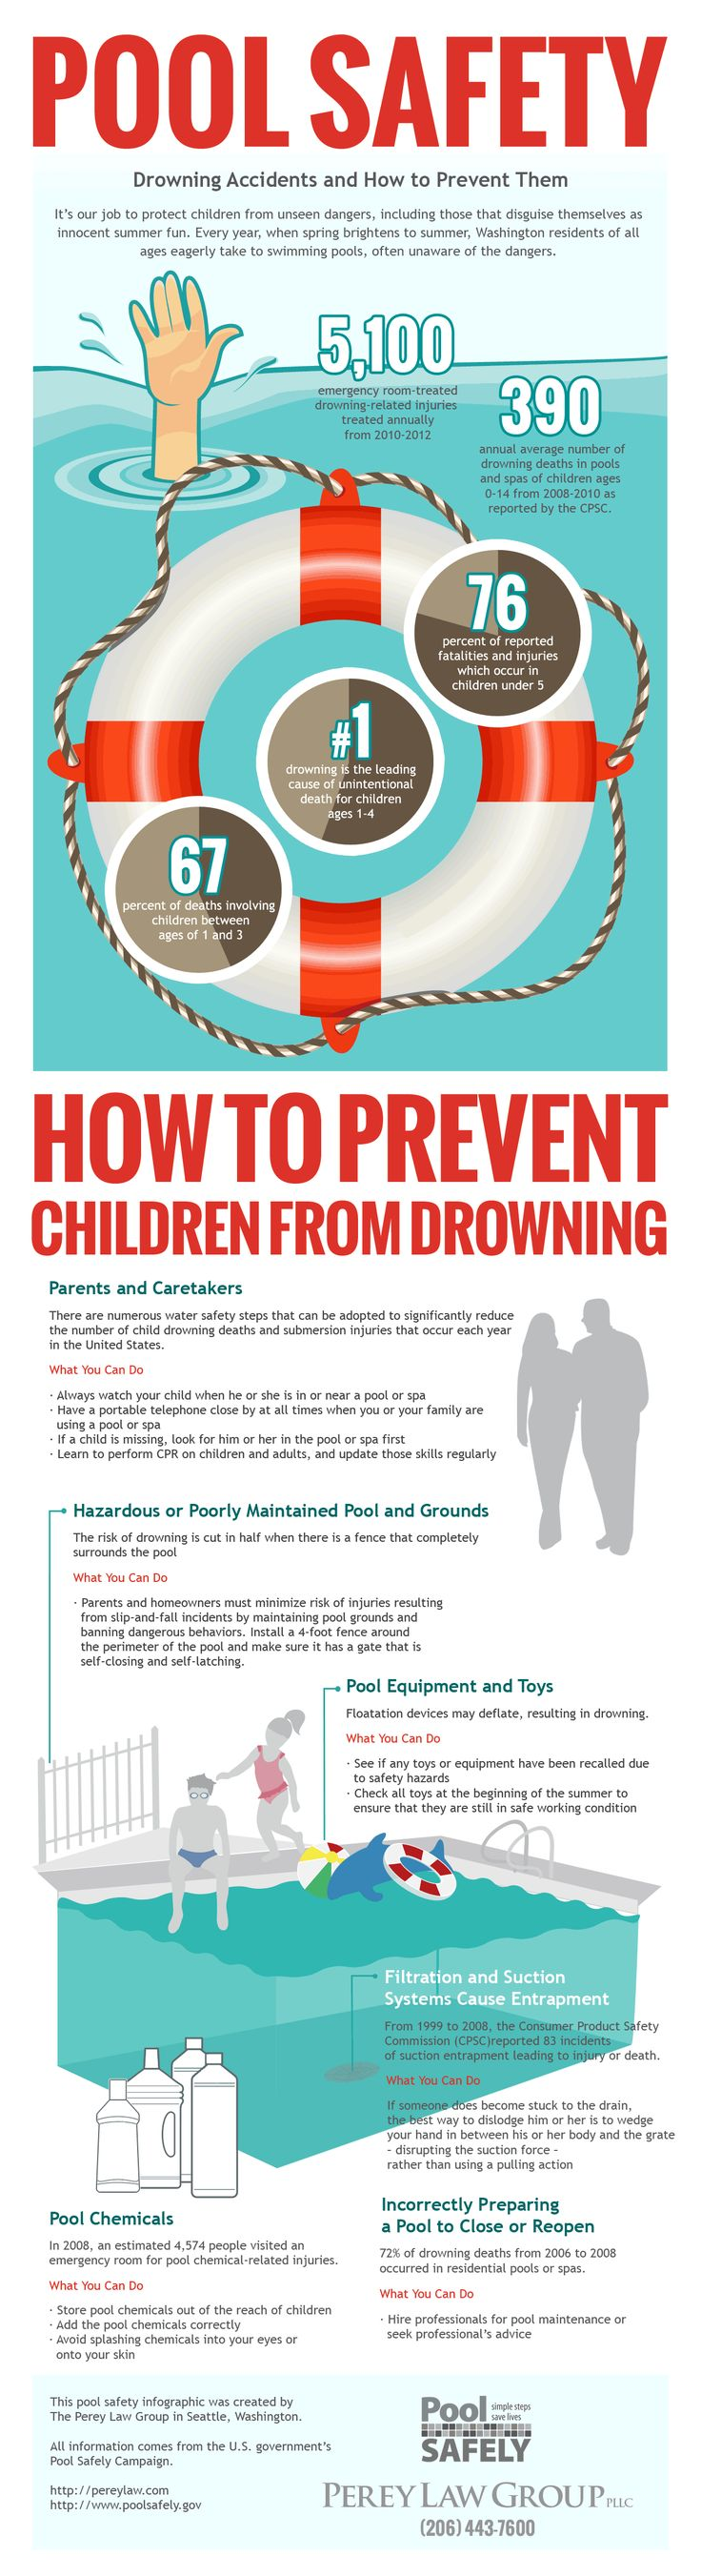 Boy dies at tropical islands swimming pool the local - Pool Safety Drowning Accidents And How To Prevent Them